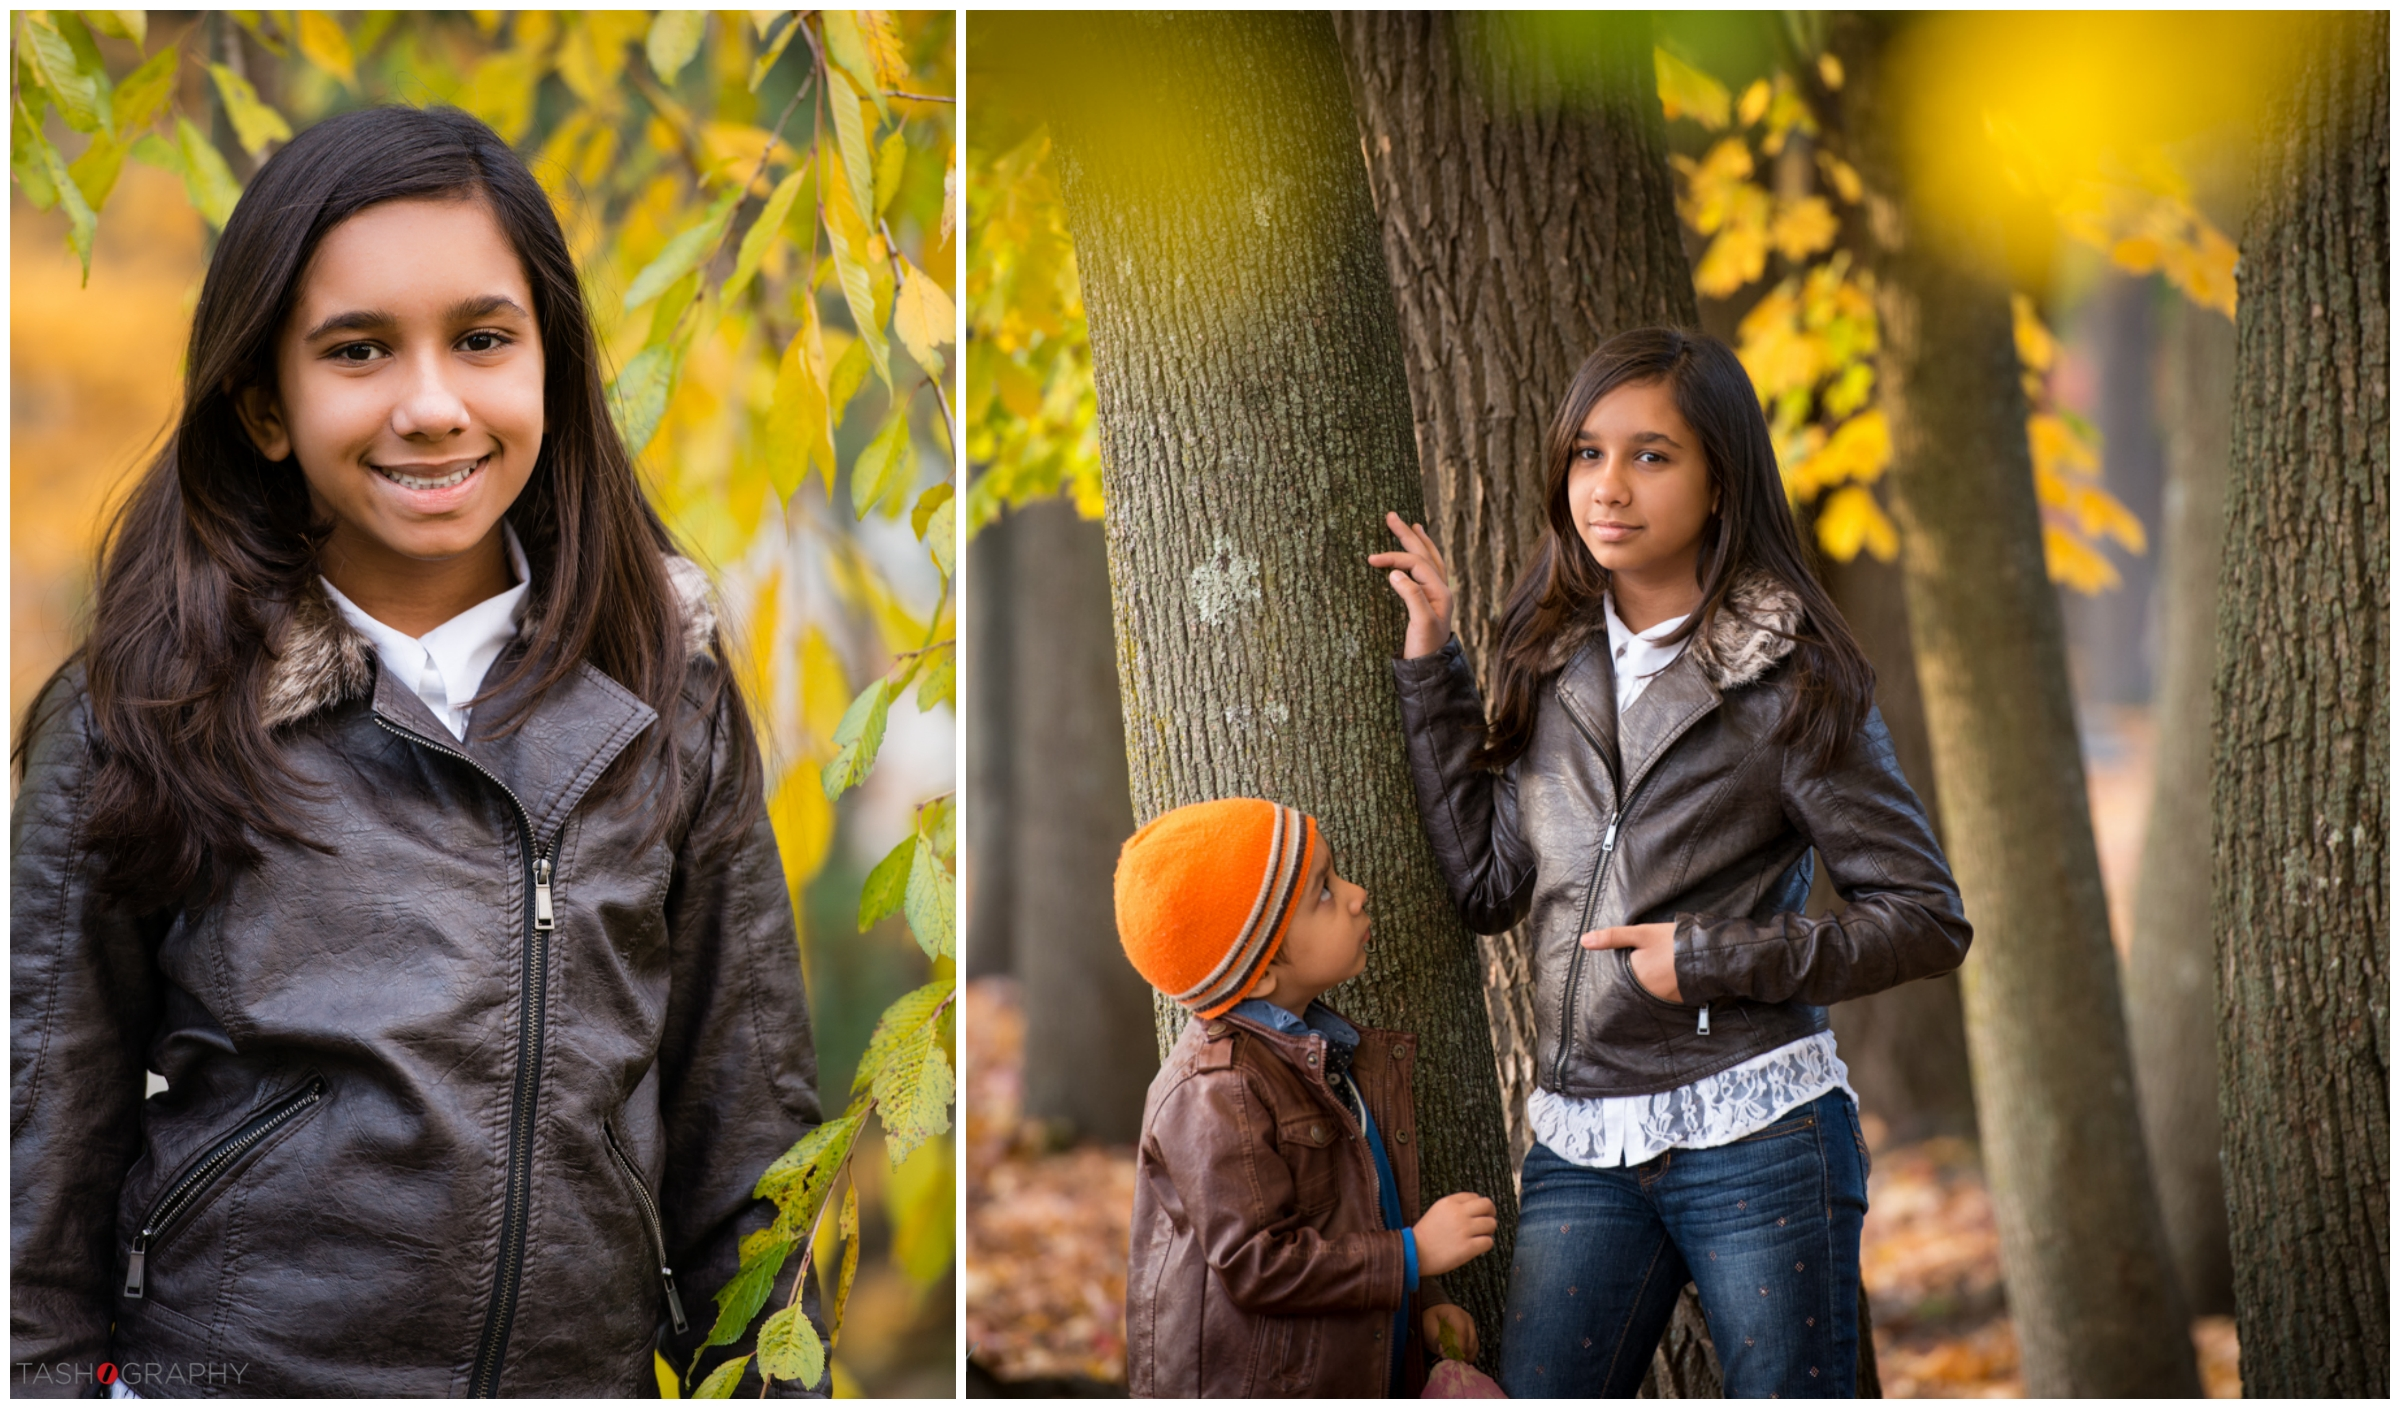 The yellow-green foliage is my favorite - I just love the bit of out of focus leaves that frame these portraits of their daughter.